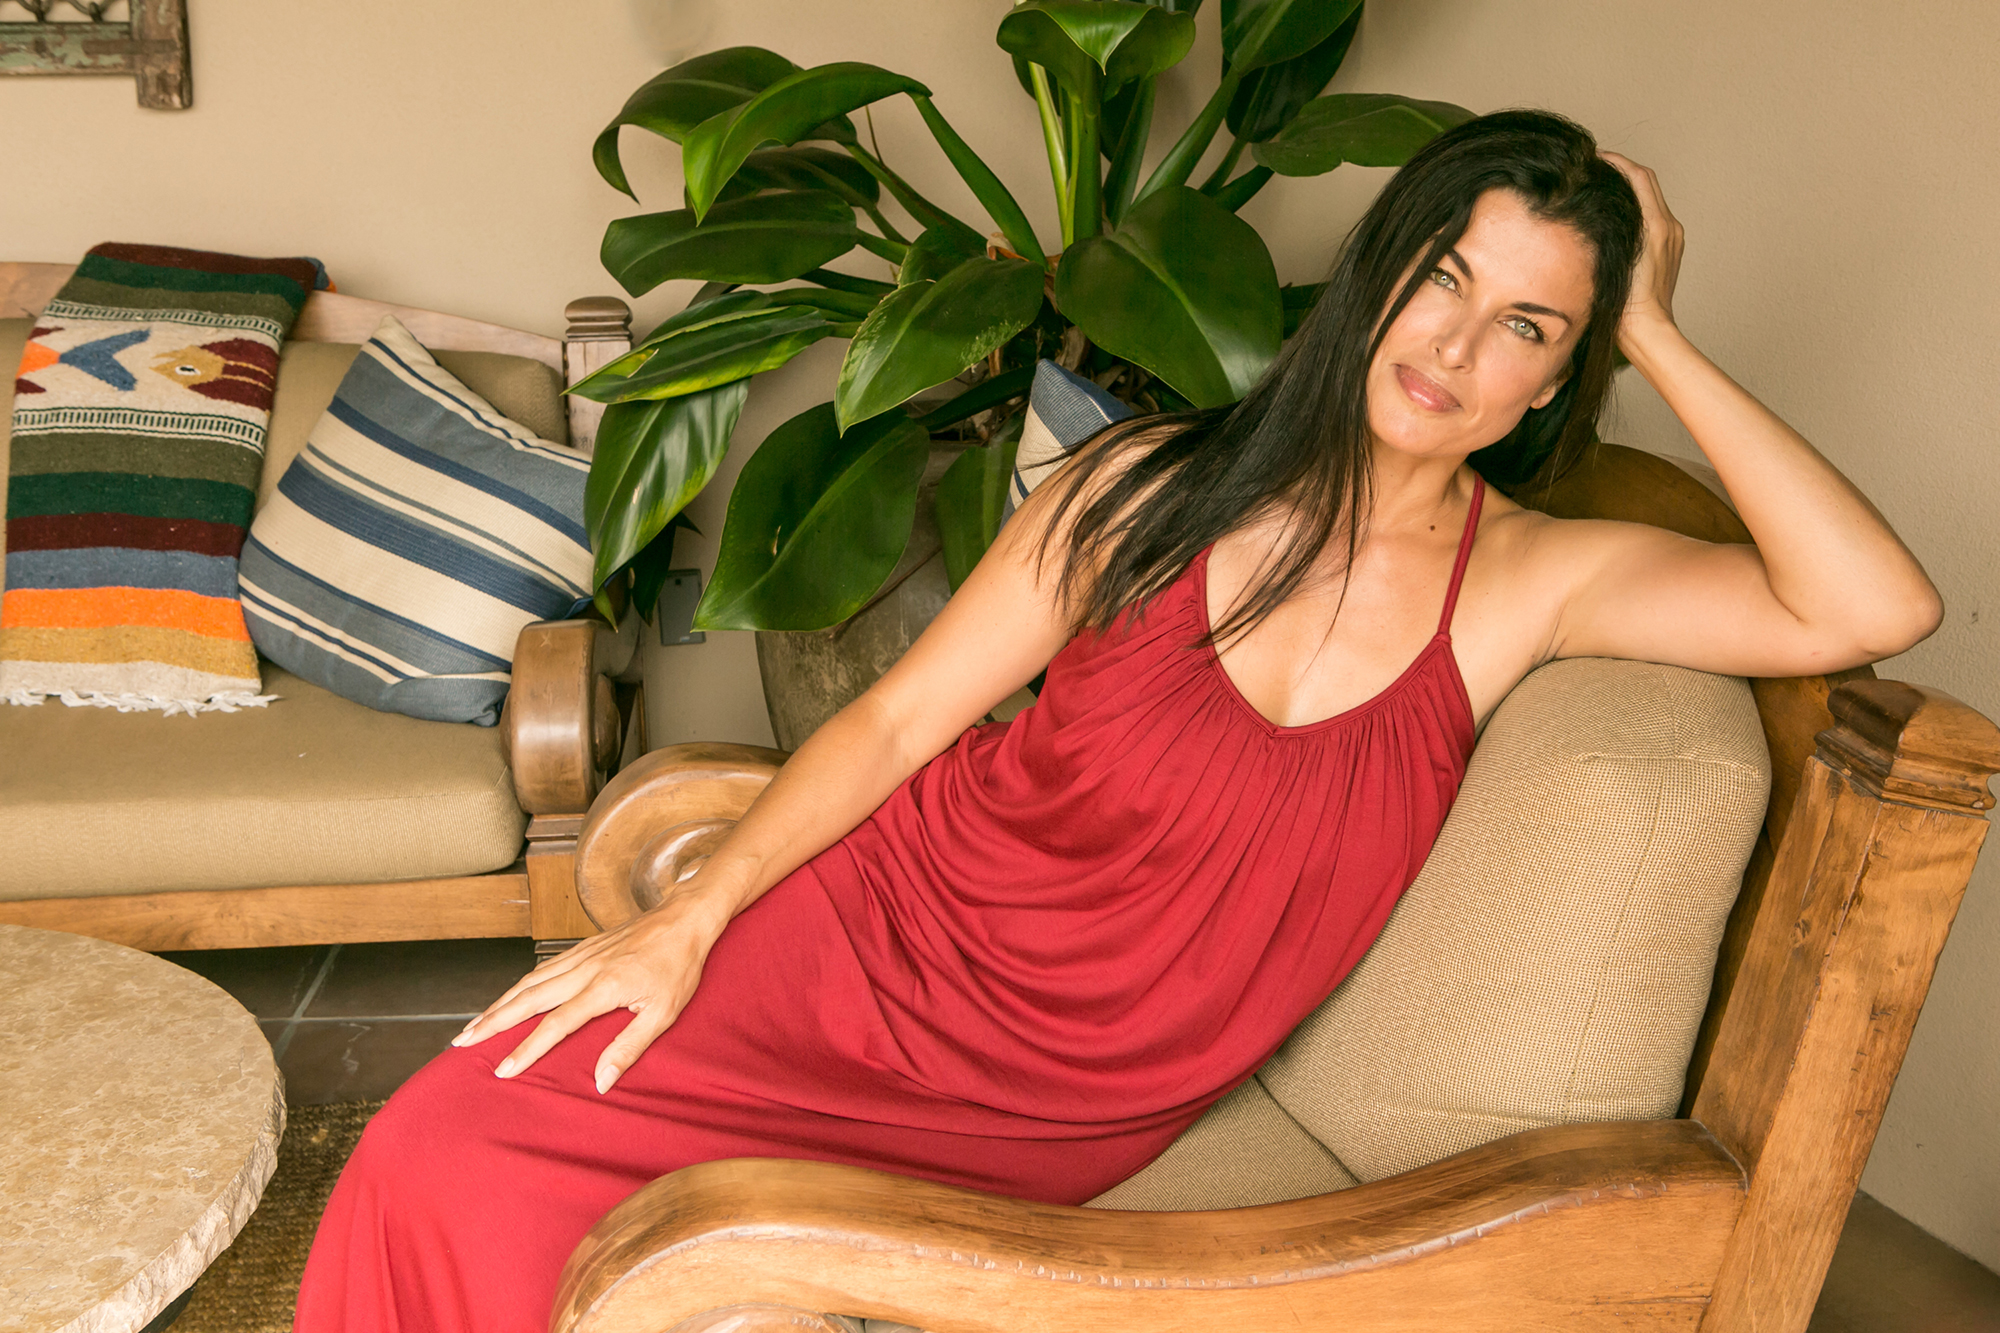 JJWinks-Room-Service-Maxi-Nightgown - With soft fabric and a sweet hemline, this nightgown is a cute and cozy option for the bedroom. $99, jjwinks.com